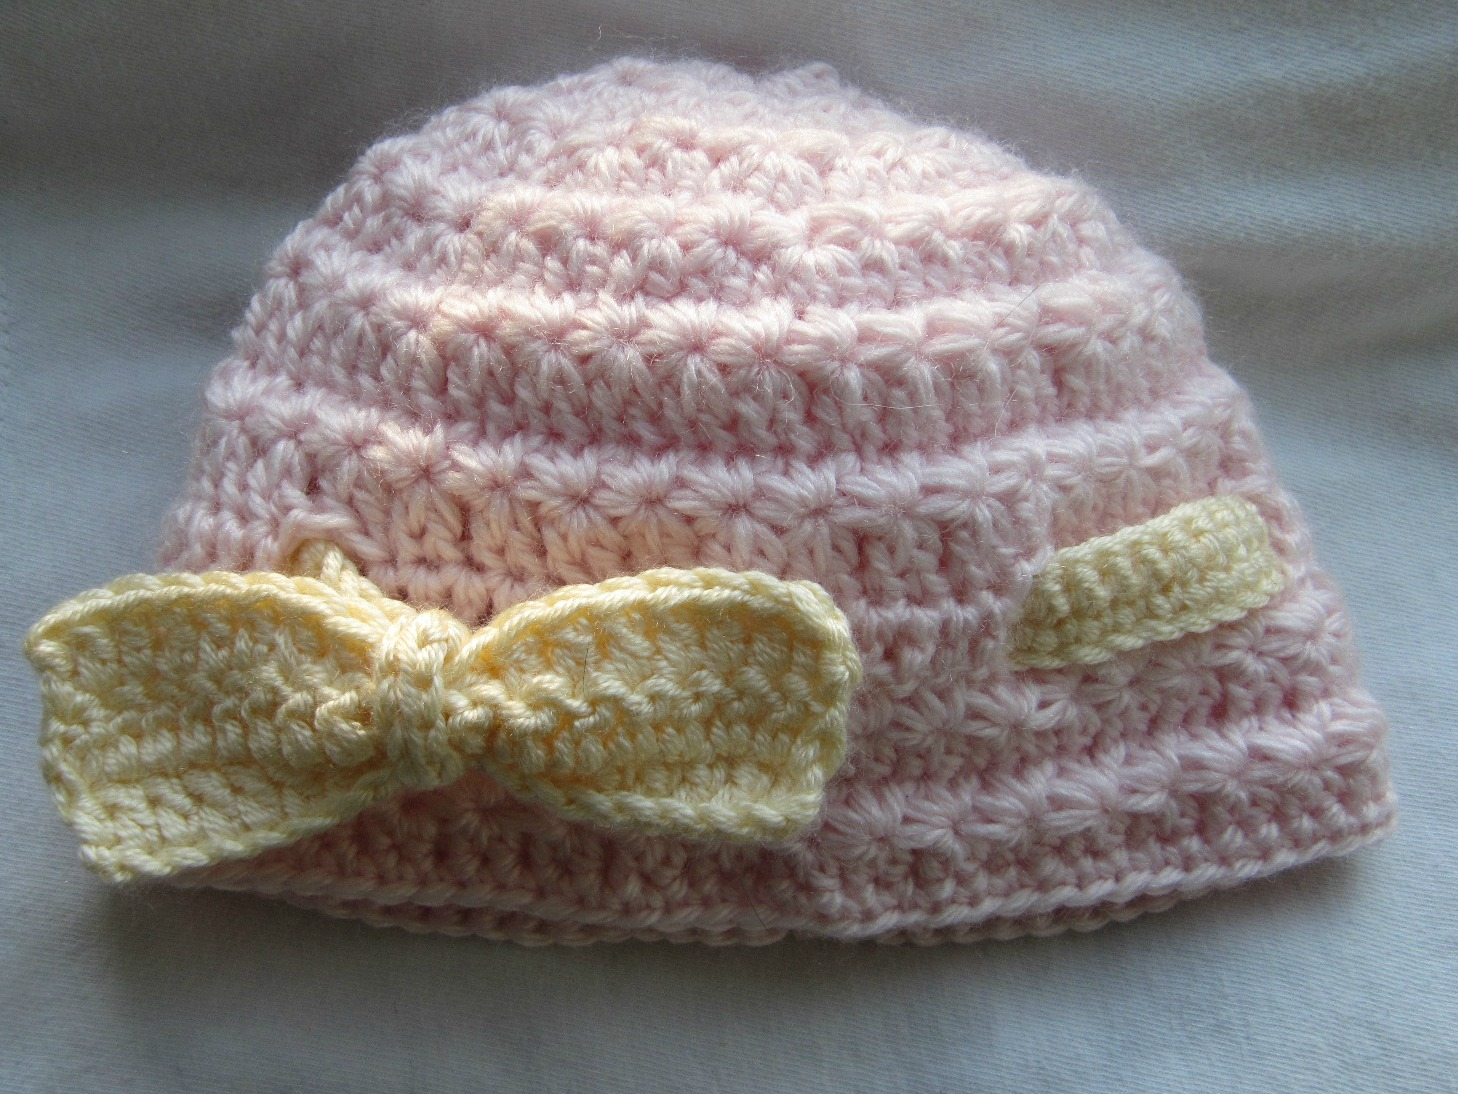 Crochet Star Stitch Hat Free Pattern : TeaBeans: Pink Star Stitch Baby Beanie